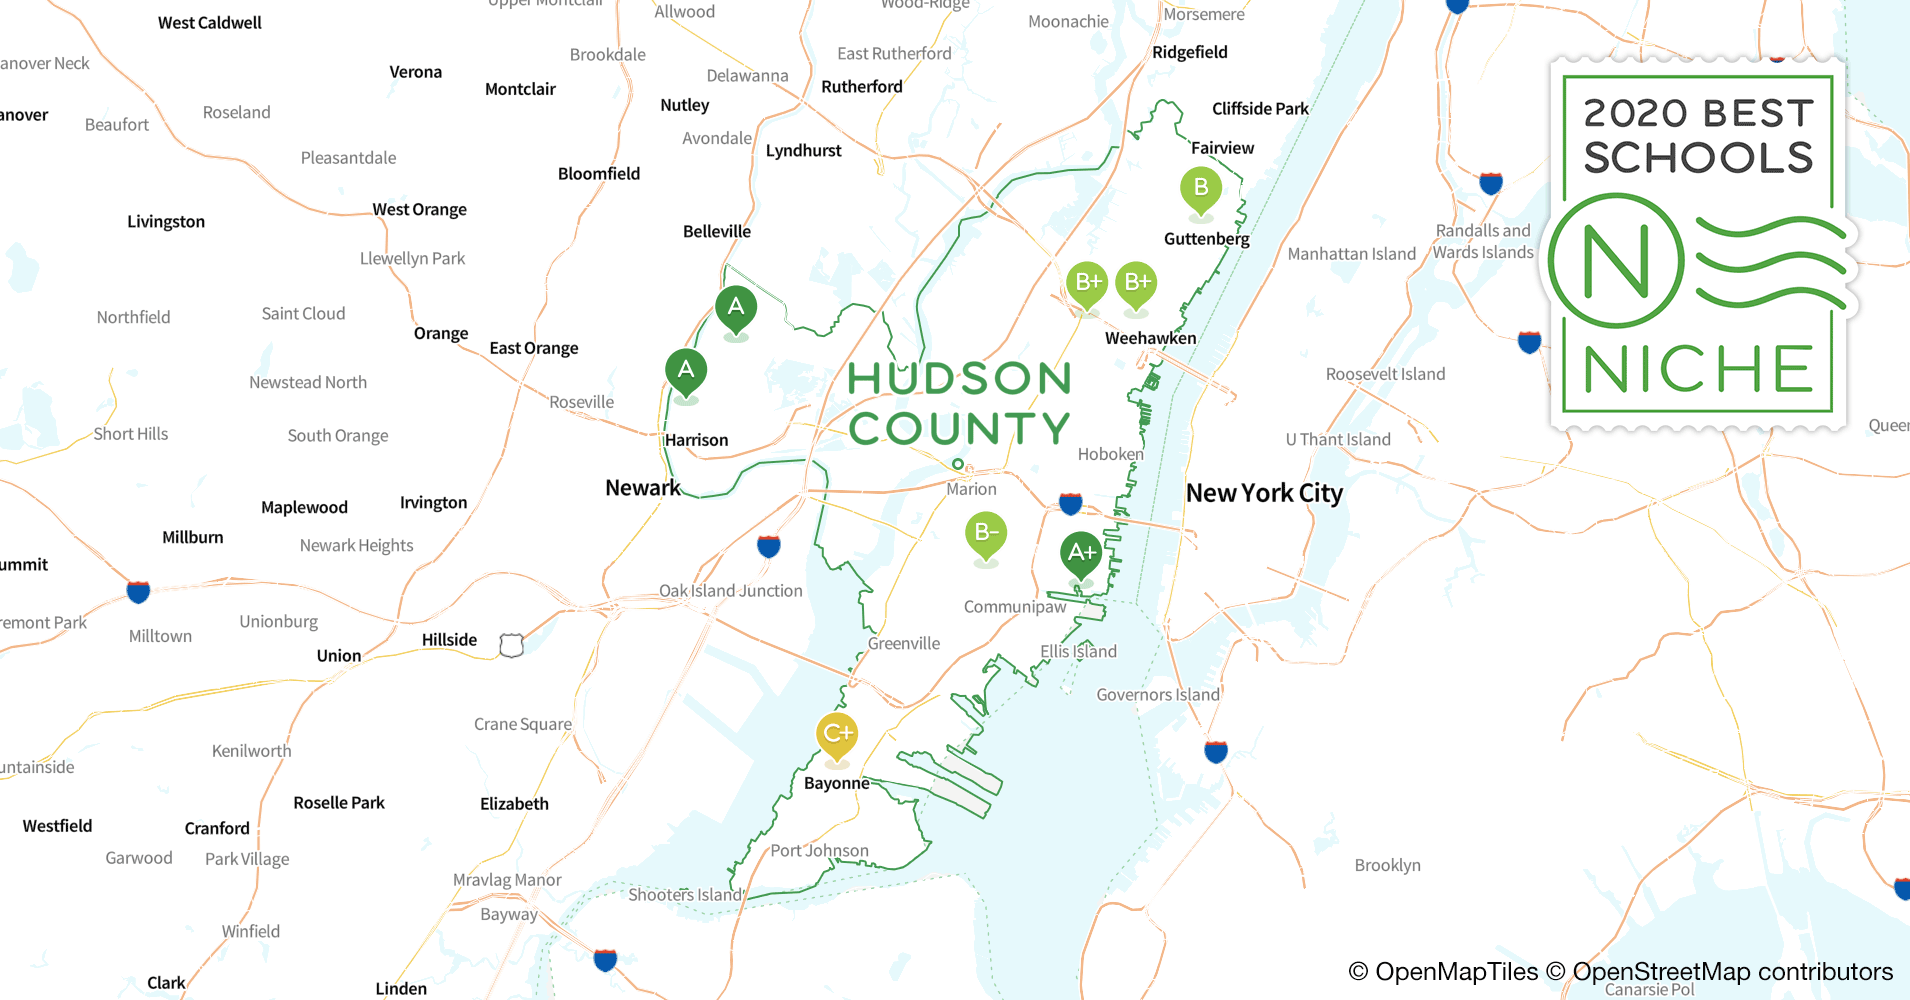 2020 Best Public Elementary s in Hudson County, NJ - Niche Map Of Es County Nj on map of nj districts, map of nj train stations, map of nj warren, map of nj town, map of nj elevation, map of nj by city, map sc county, map of nj hunting zones, map of nj shoreline, map of nj jackson, map of nj interstates, new york nj county, map of nj coast, map of nj township, map of nj colony, map of nj utilities, map of nj regions, map of nj counties, map of nj state, map nc county,